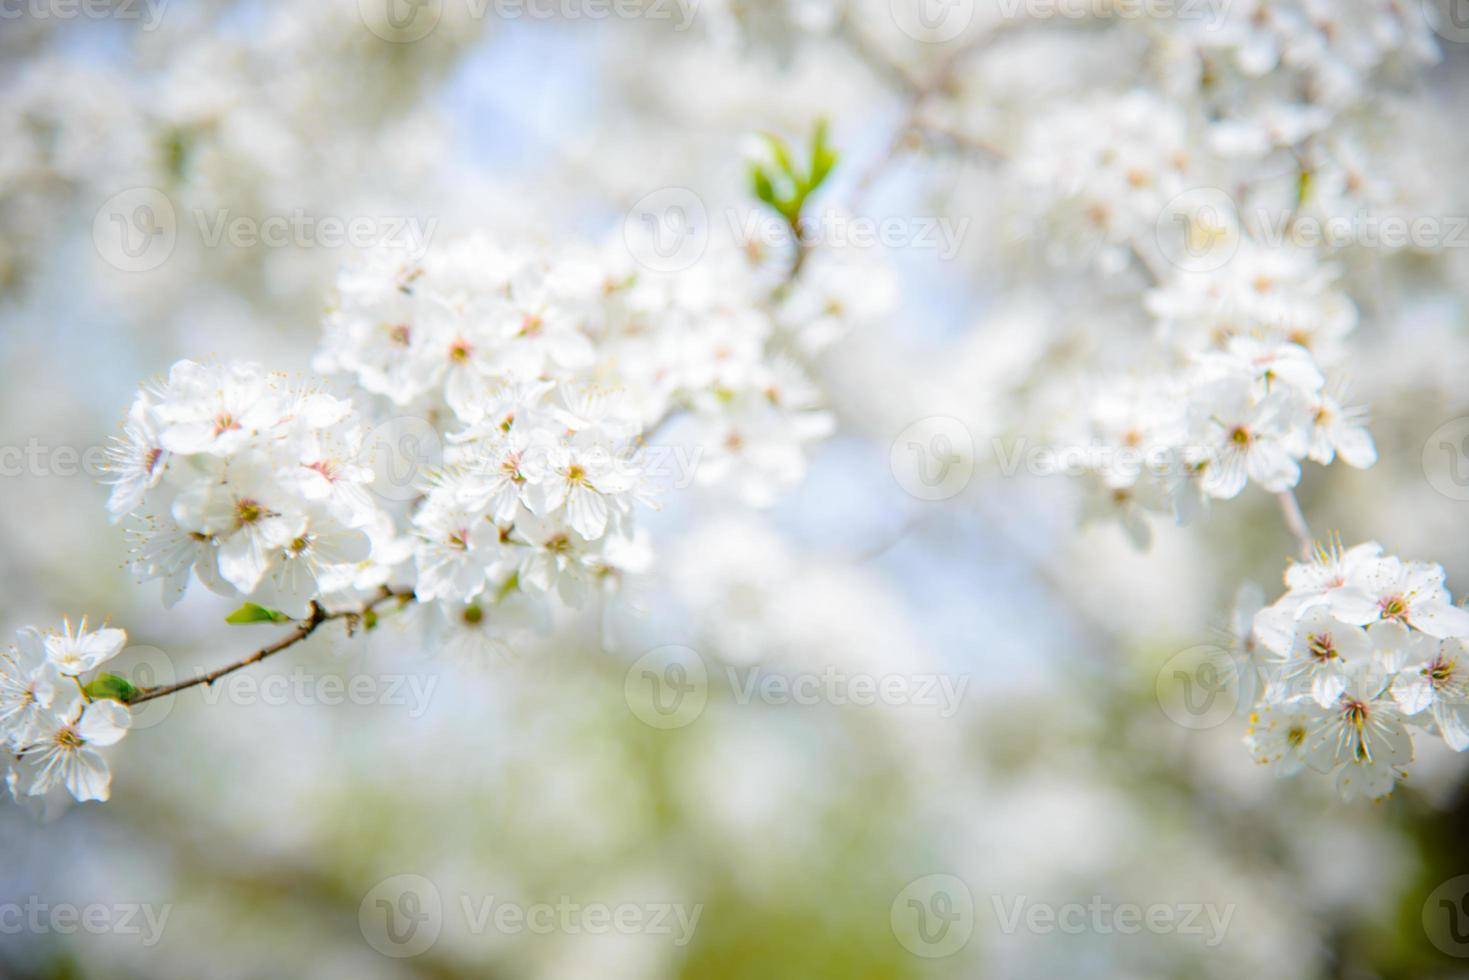 Plum Blossom in Spring photo